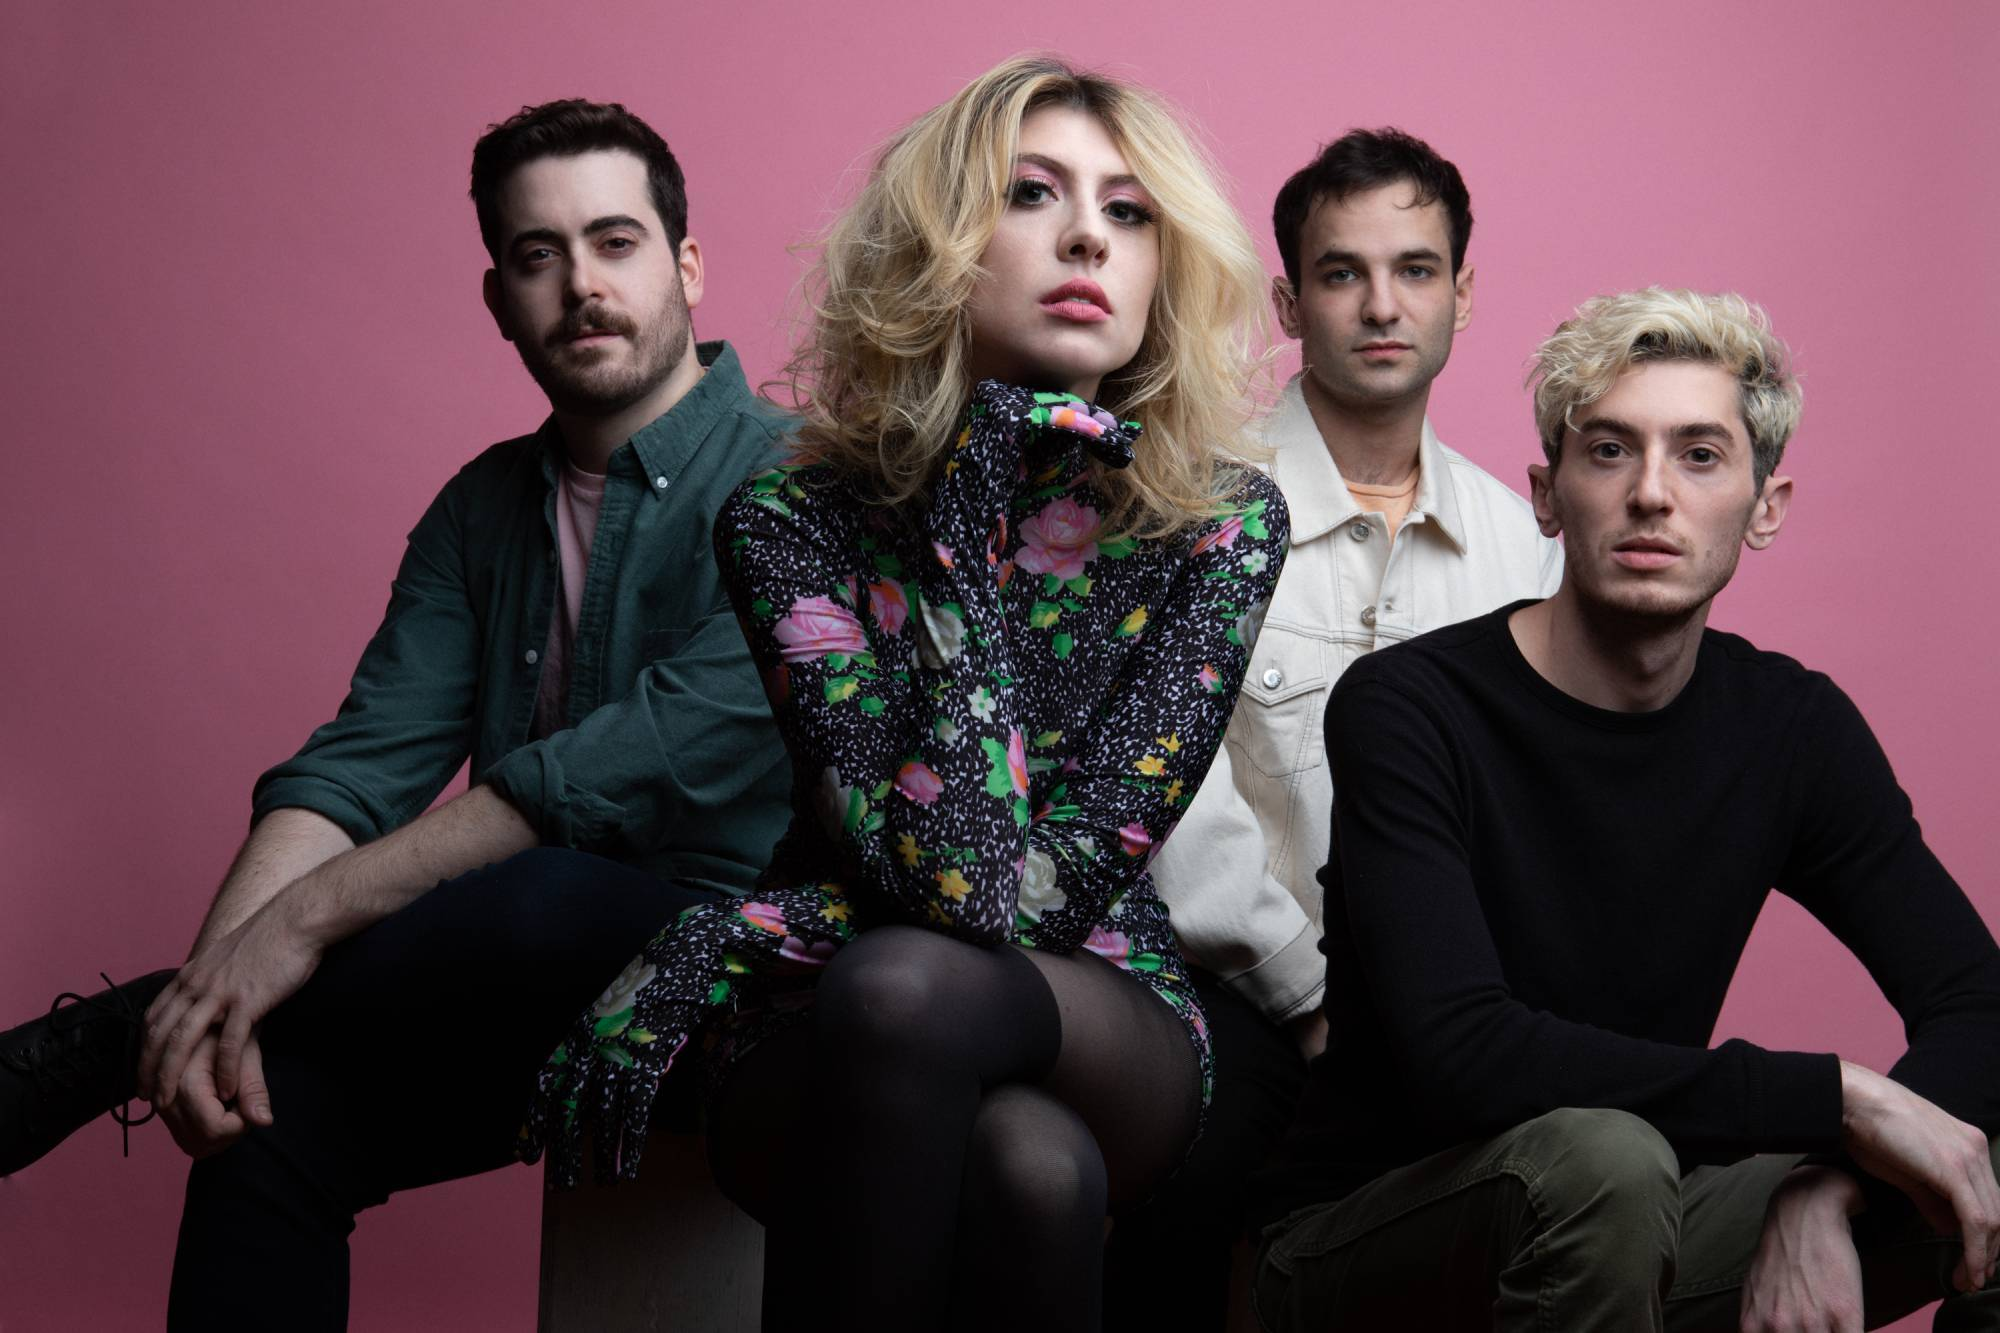 Charly Bliss confirm details of new album 'Young Enough'